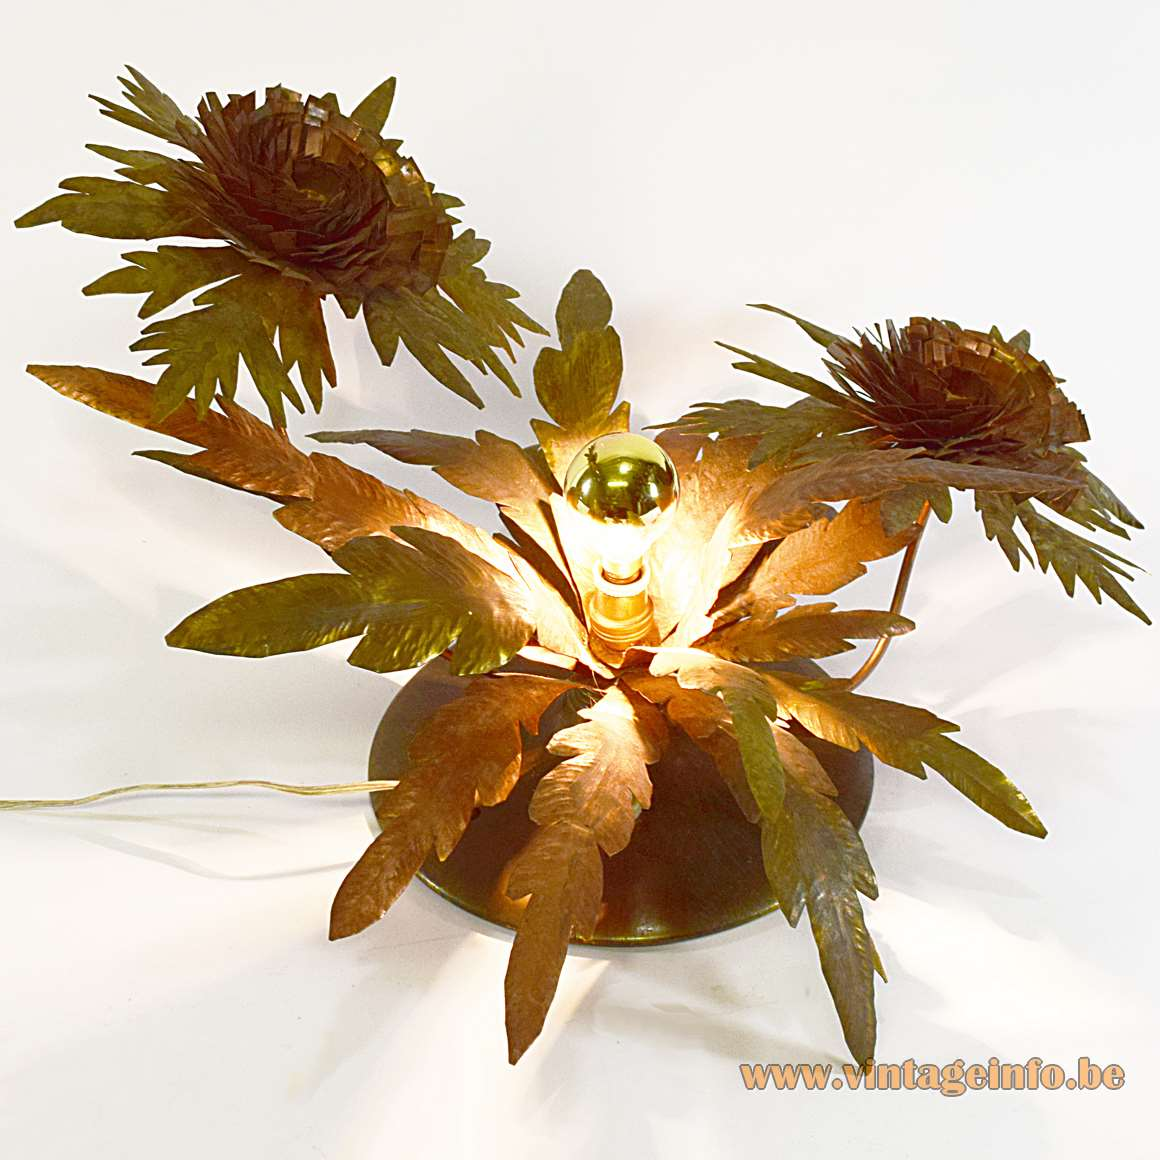 Brass 2 Flowers Table Lamp copper leaves 1 light bulb round base cardboard bottom 1950s